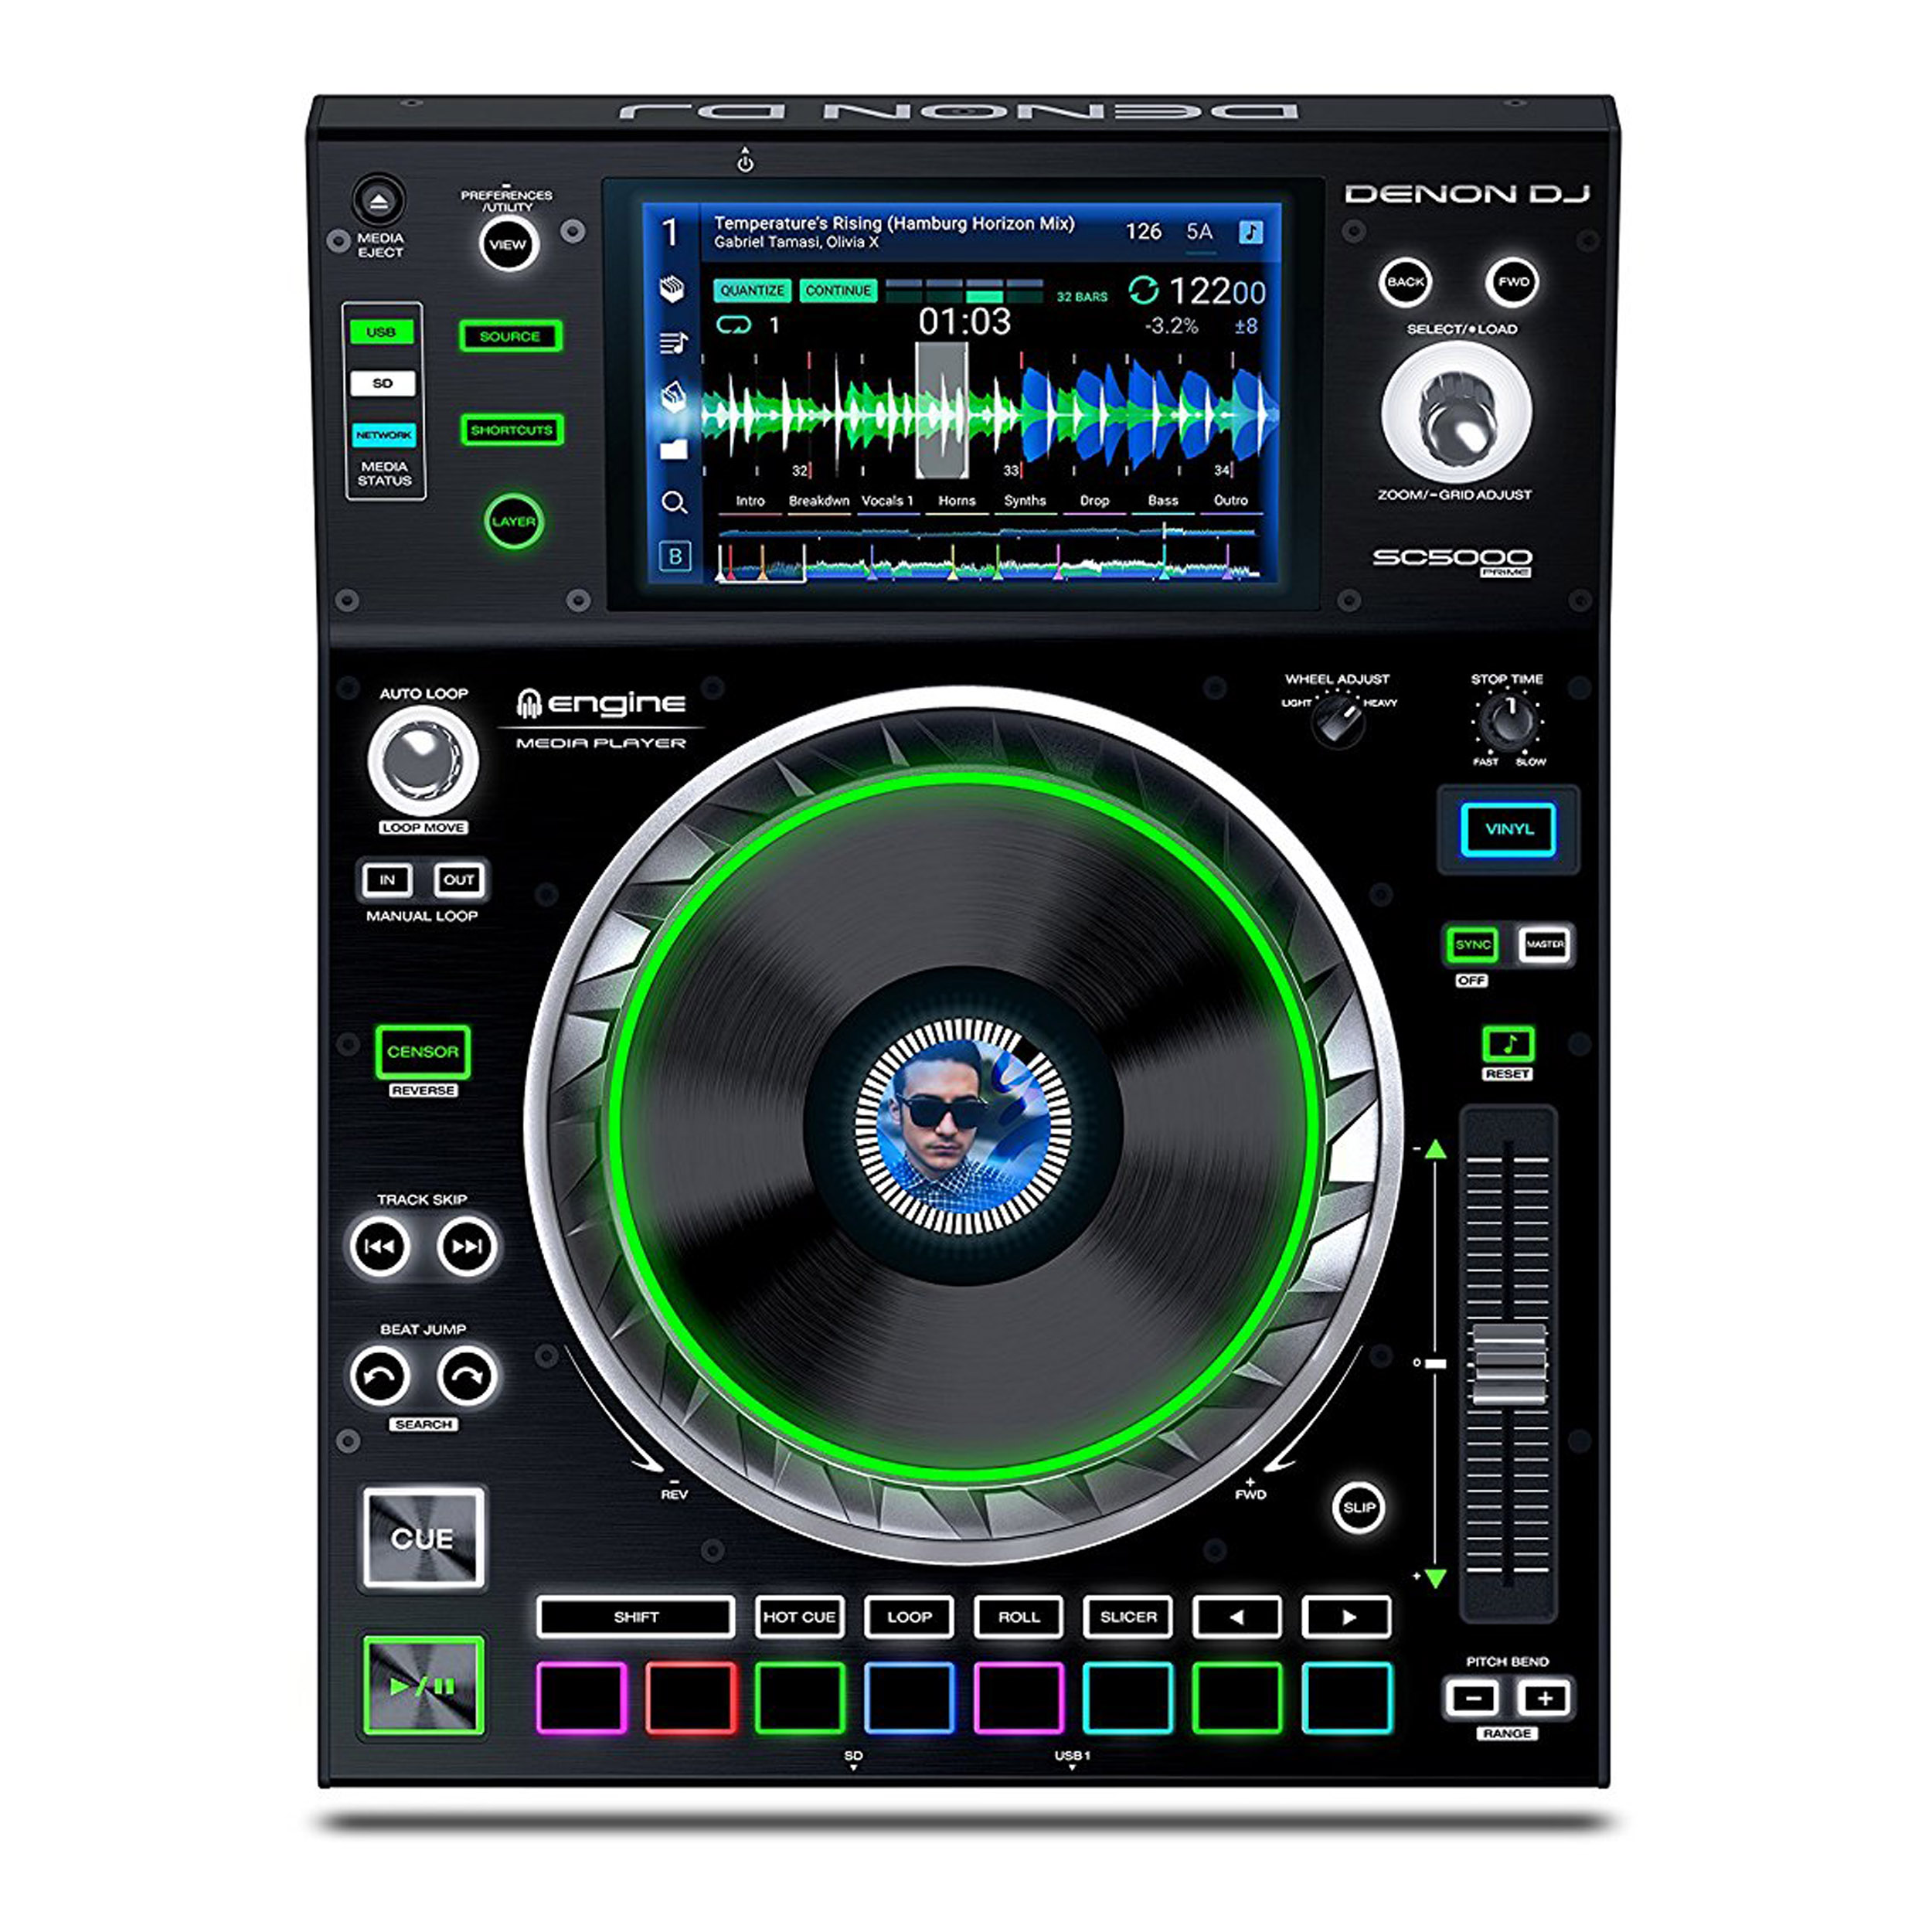 "Denon DJ SC5000 Prime | Engine Media Player with 7"" Multi-Touch Display by DENON"